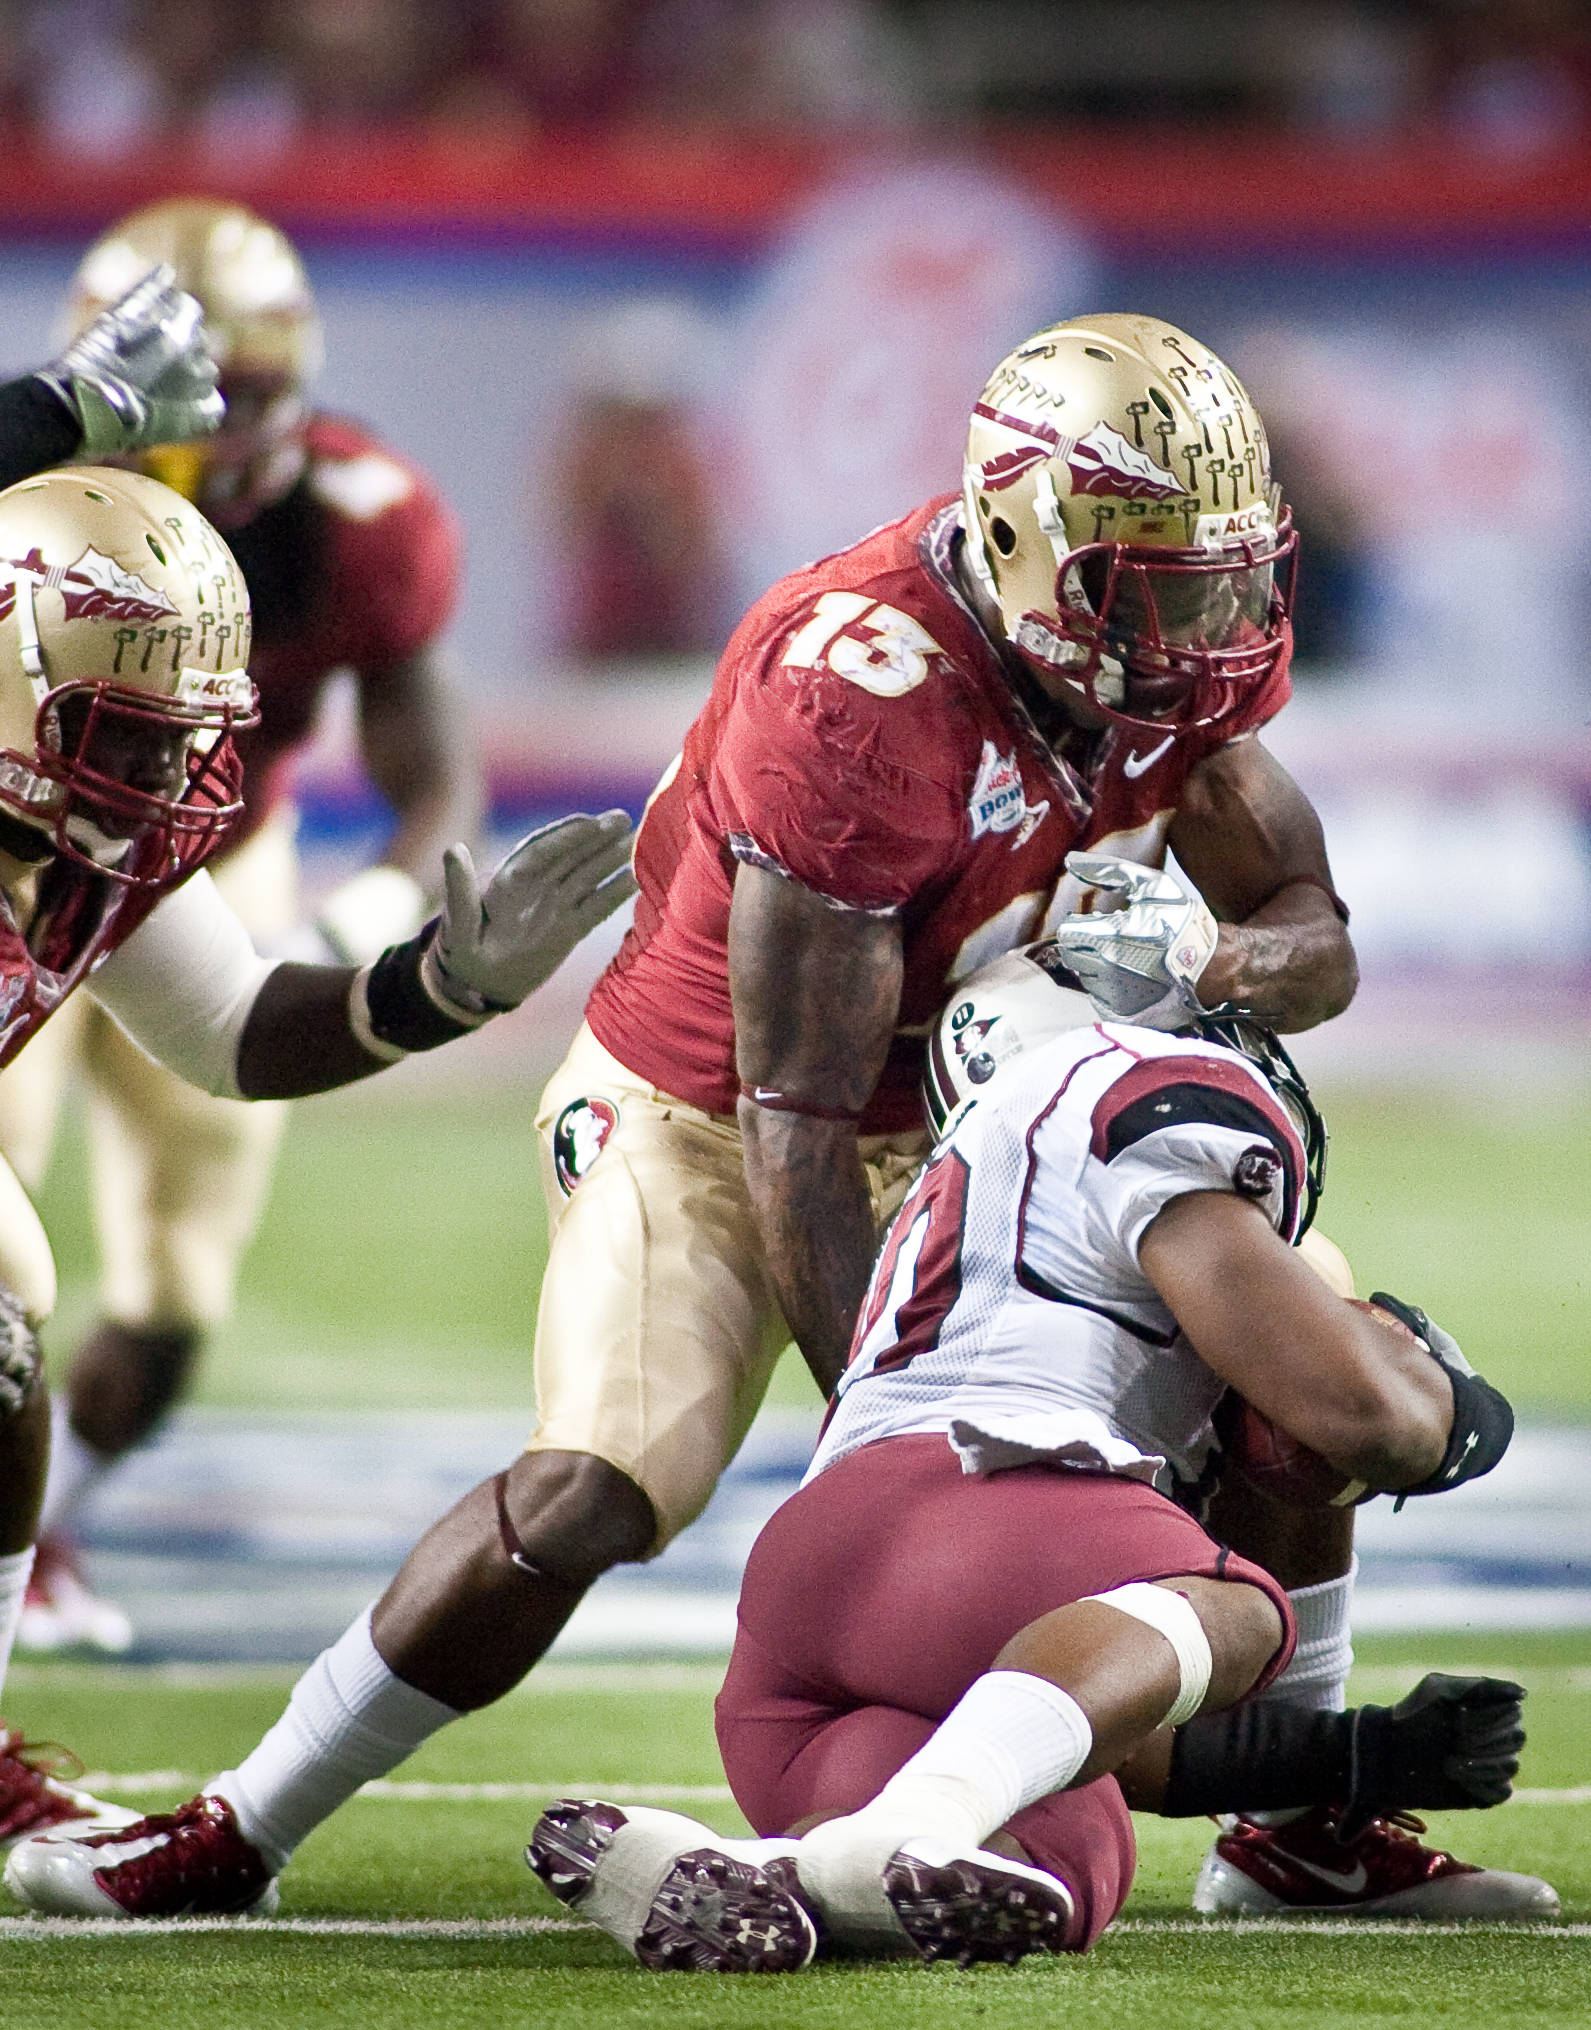 Nigel Bradham (13) with a big tackle